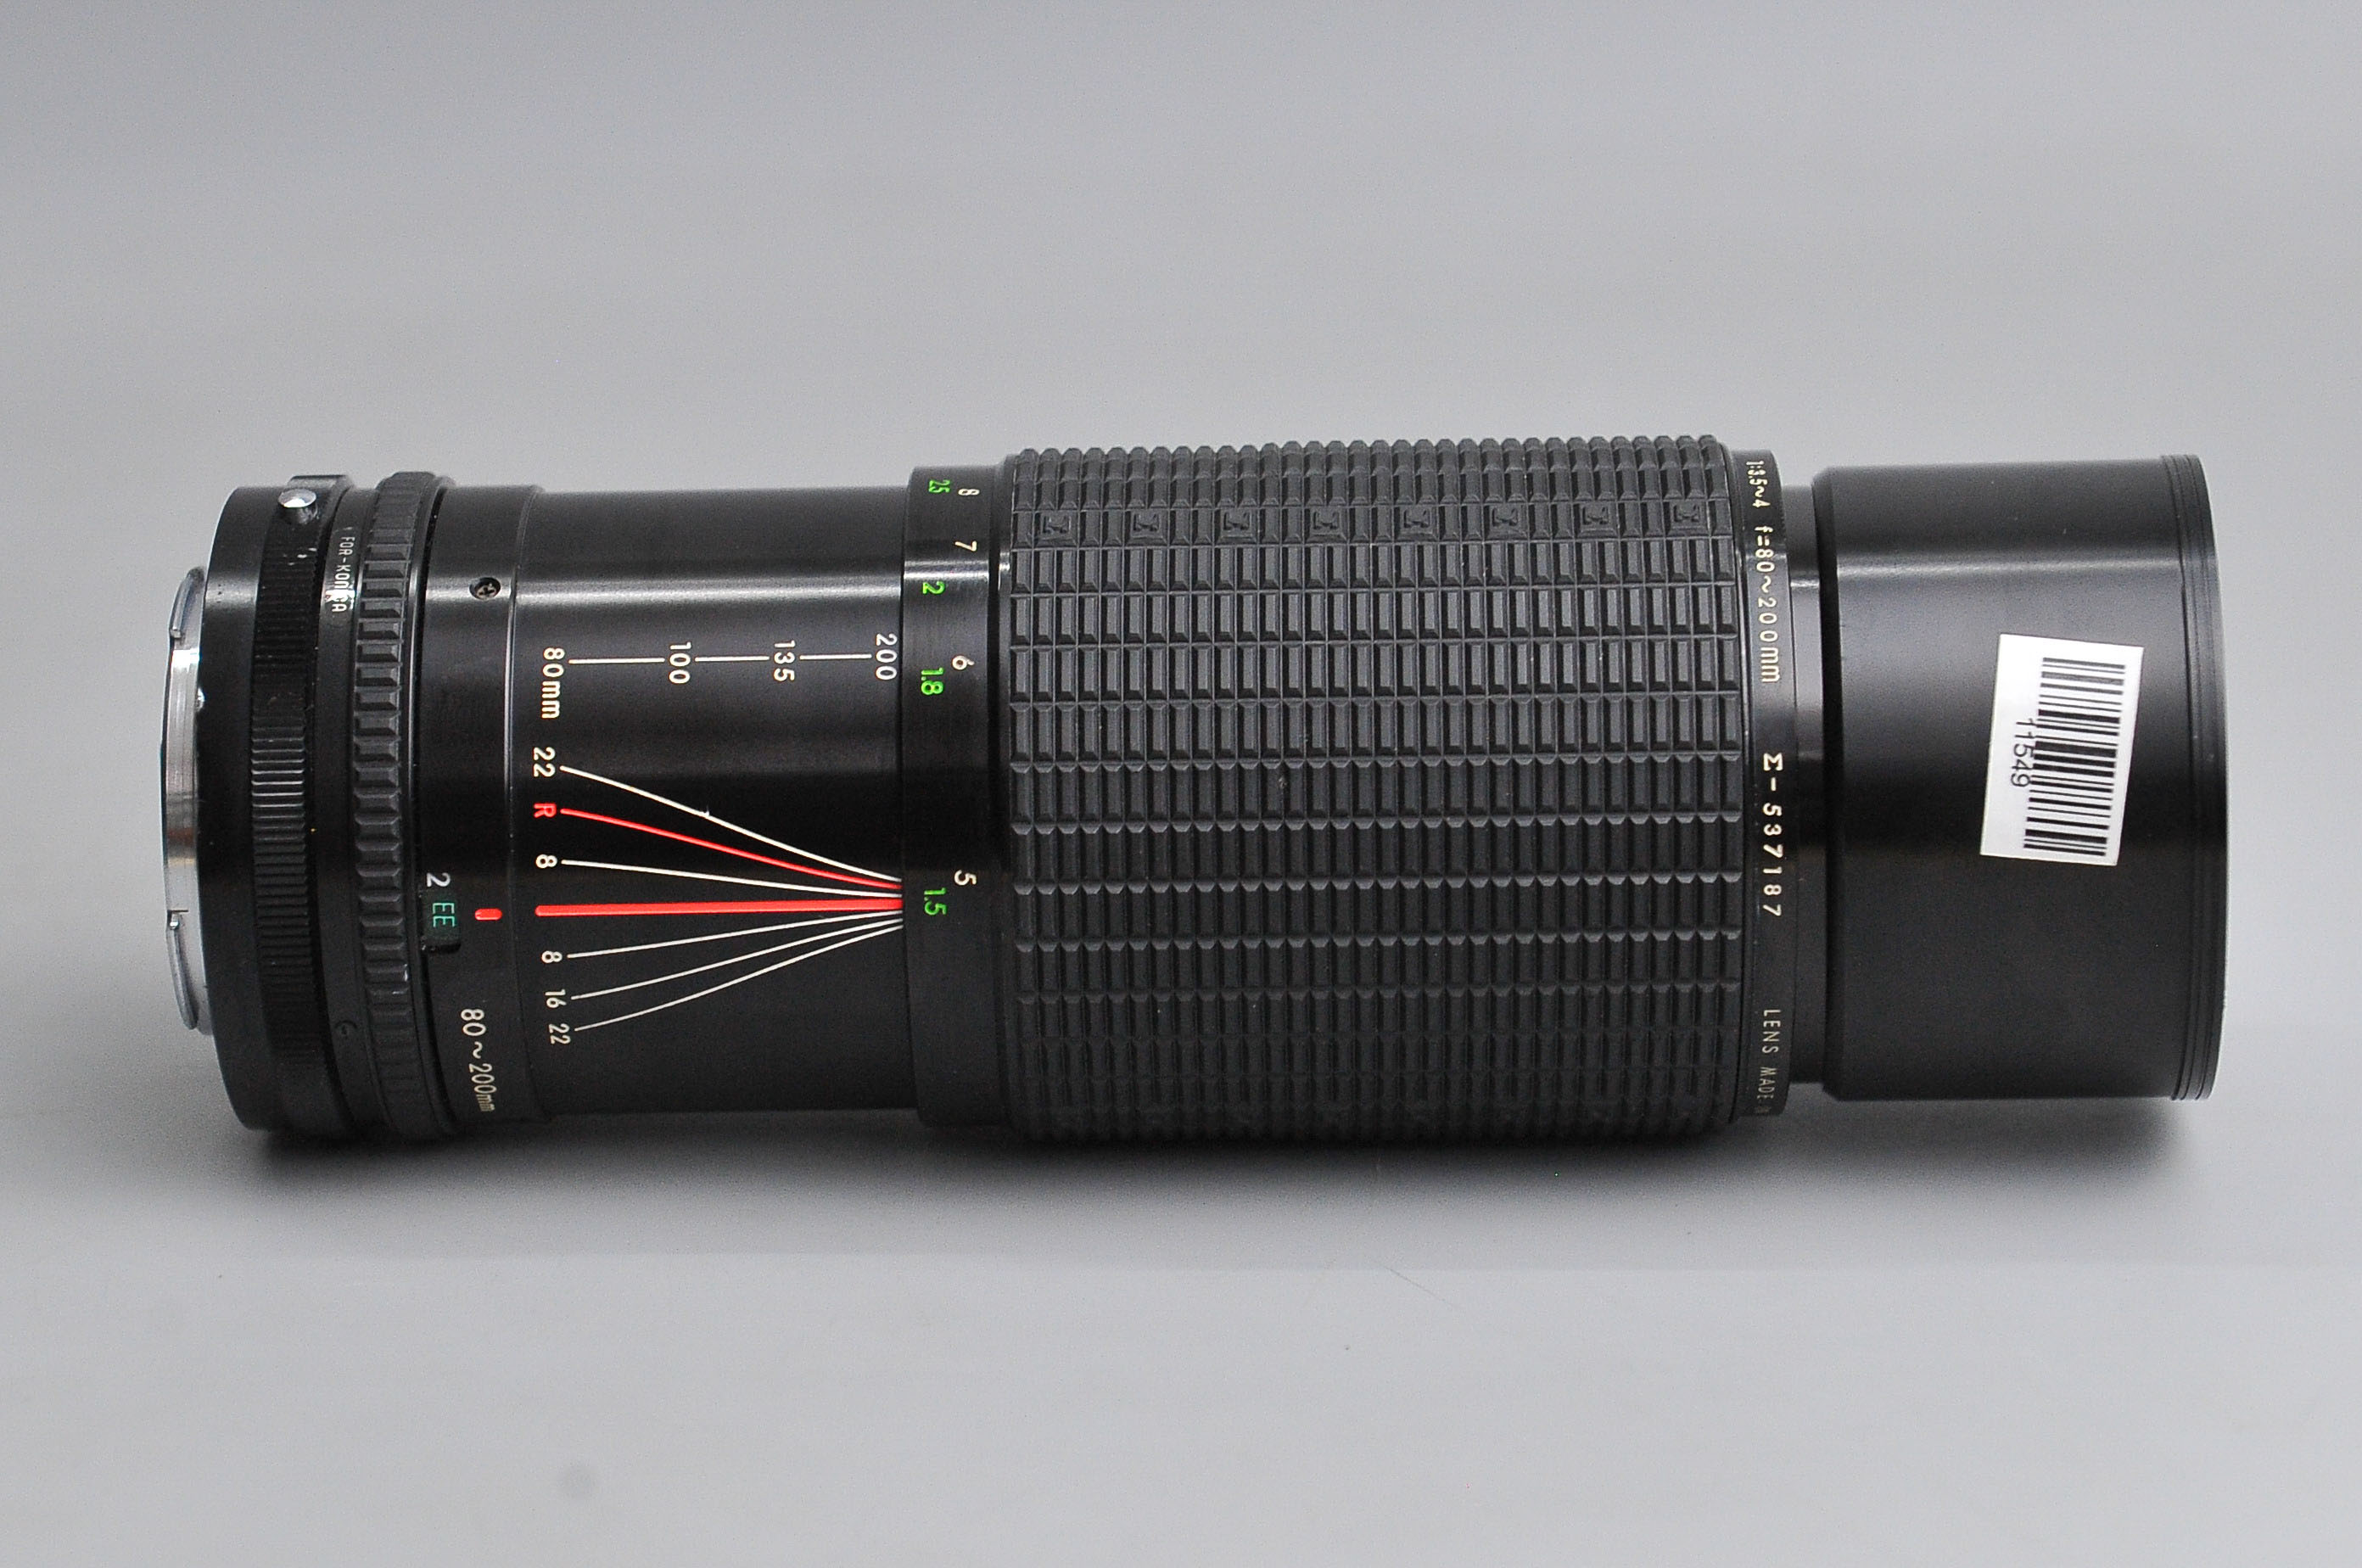 sigma-80-200mm-f3-5-4-mf-olympus-om-80-200-3-5-4-0-97-11549